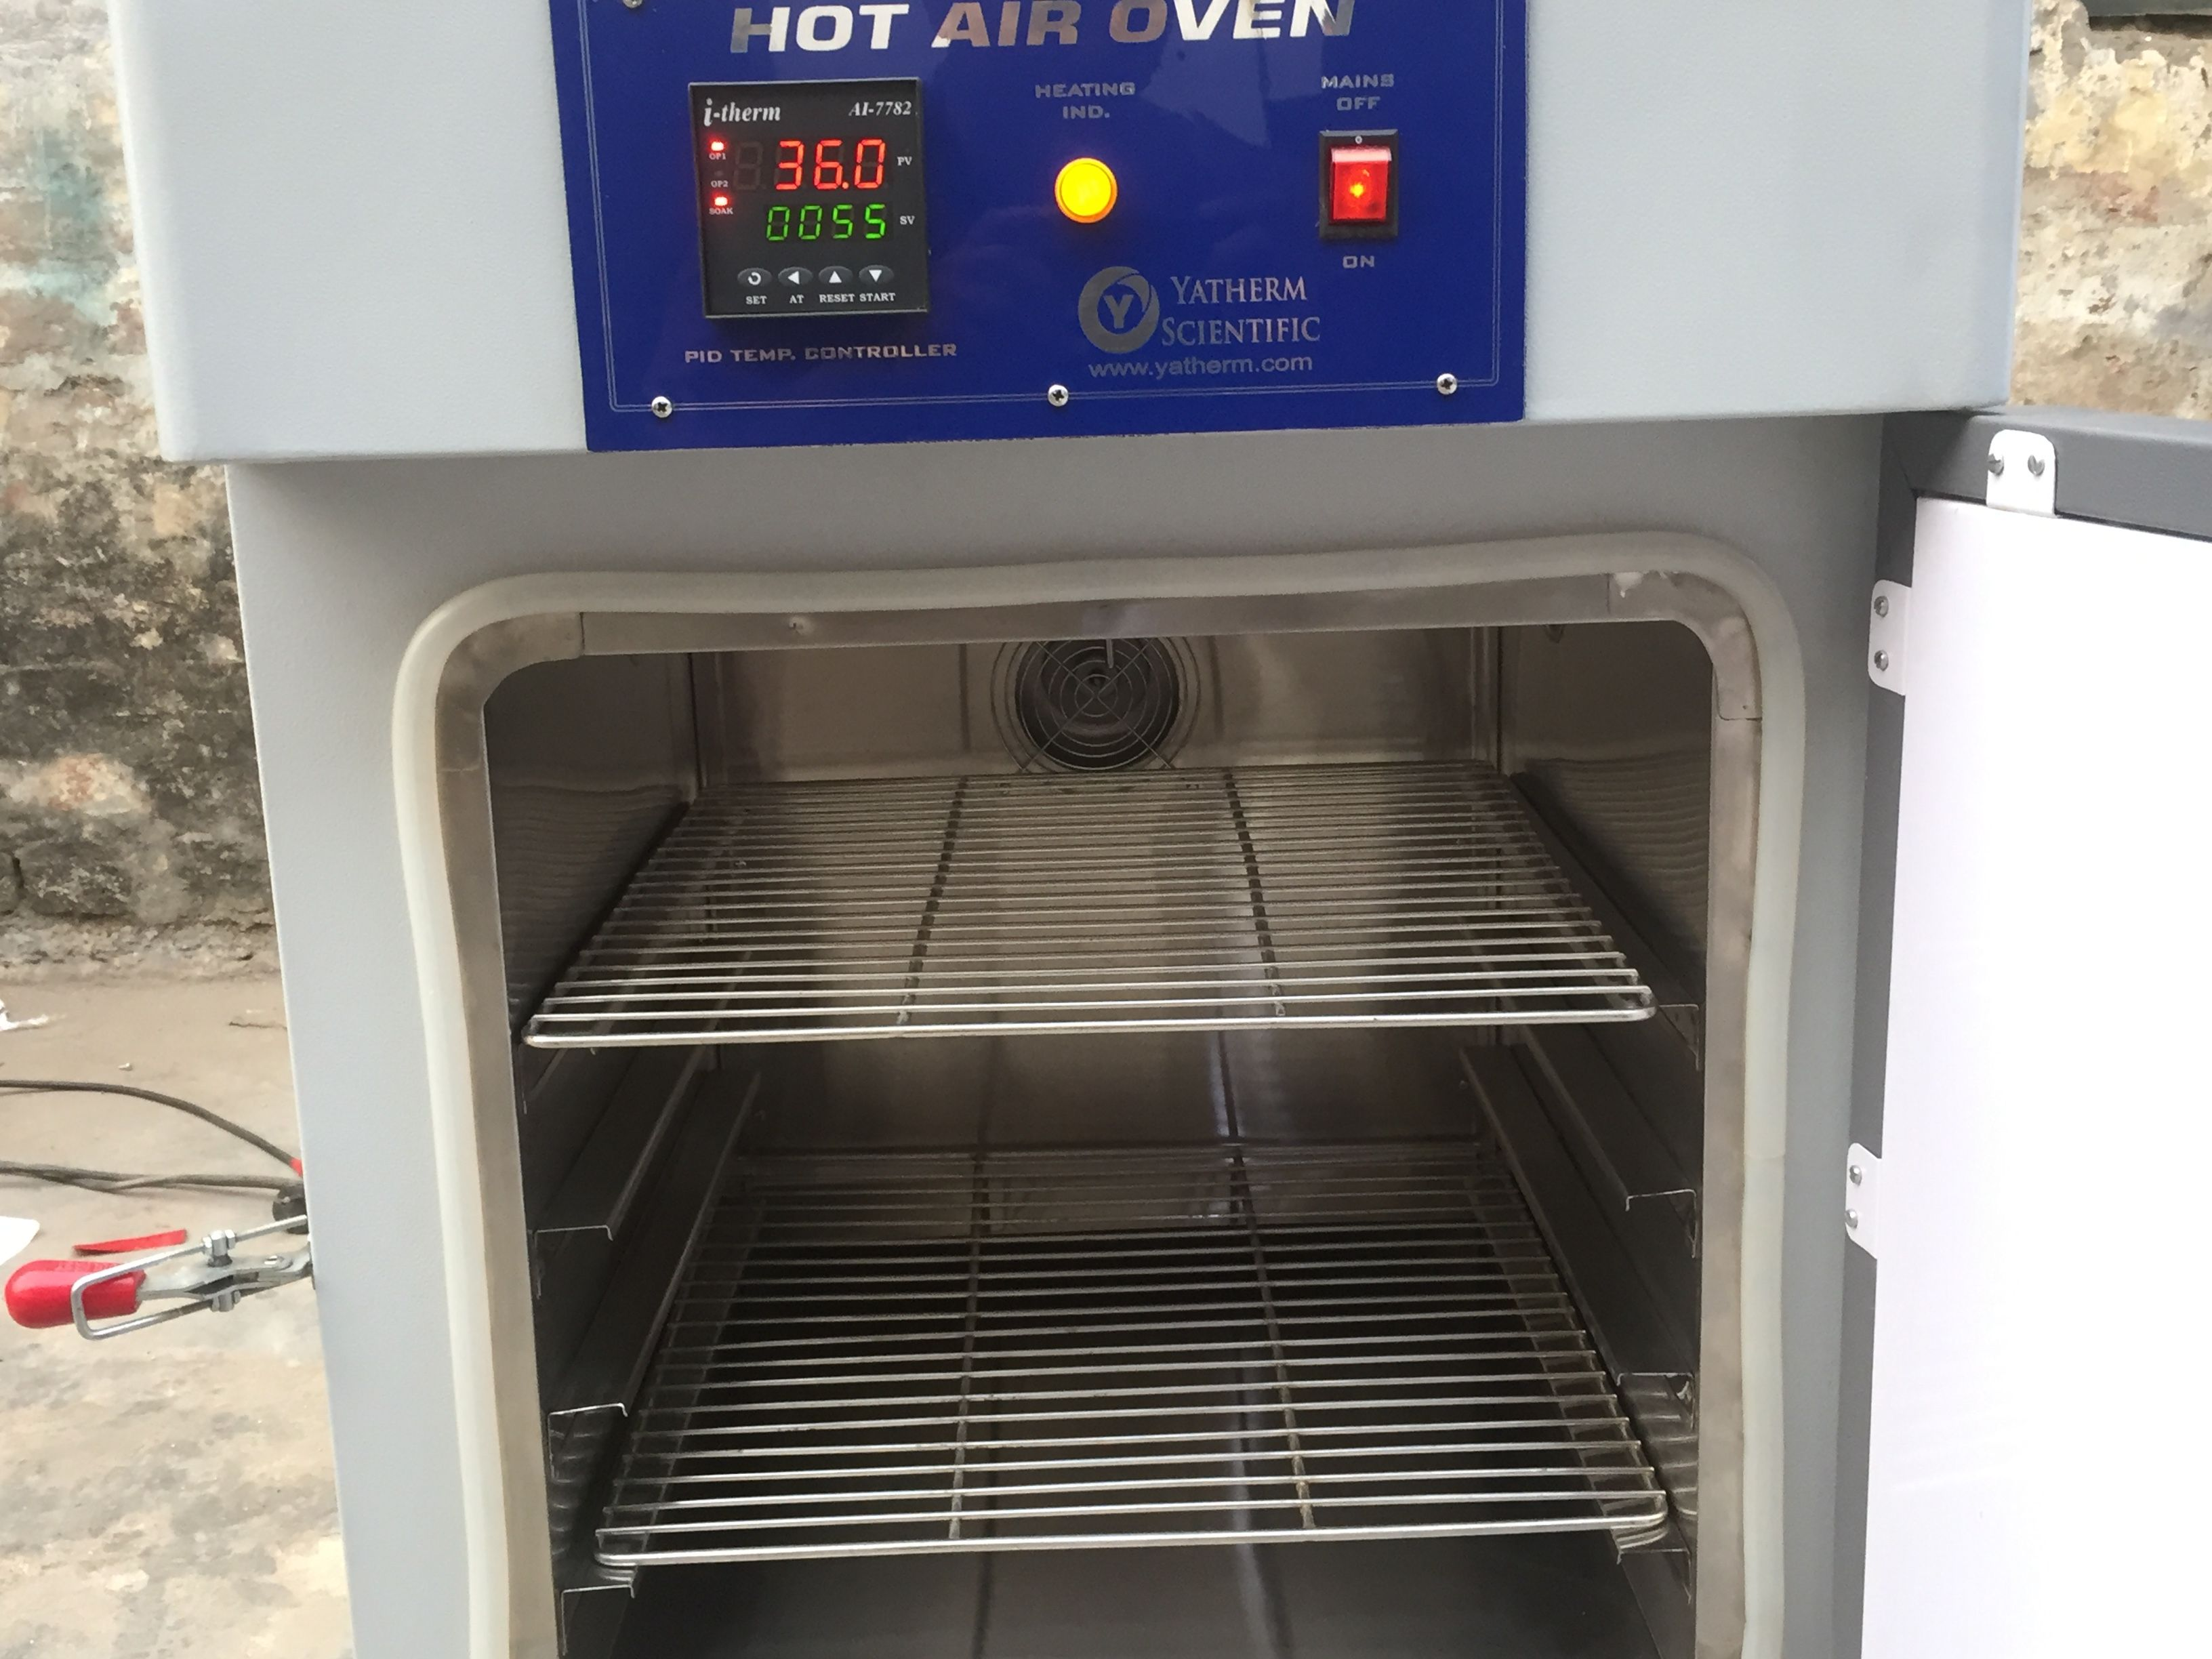 Laboratory Hot Air Oven Manufacturer Supplier India Convection